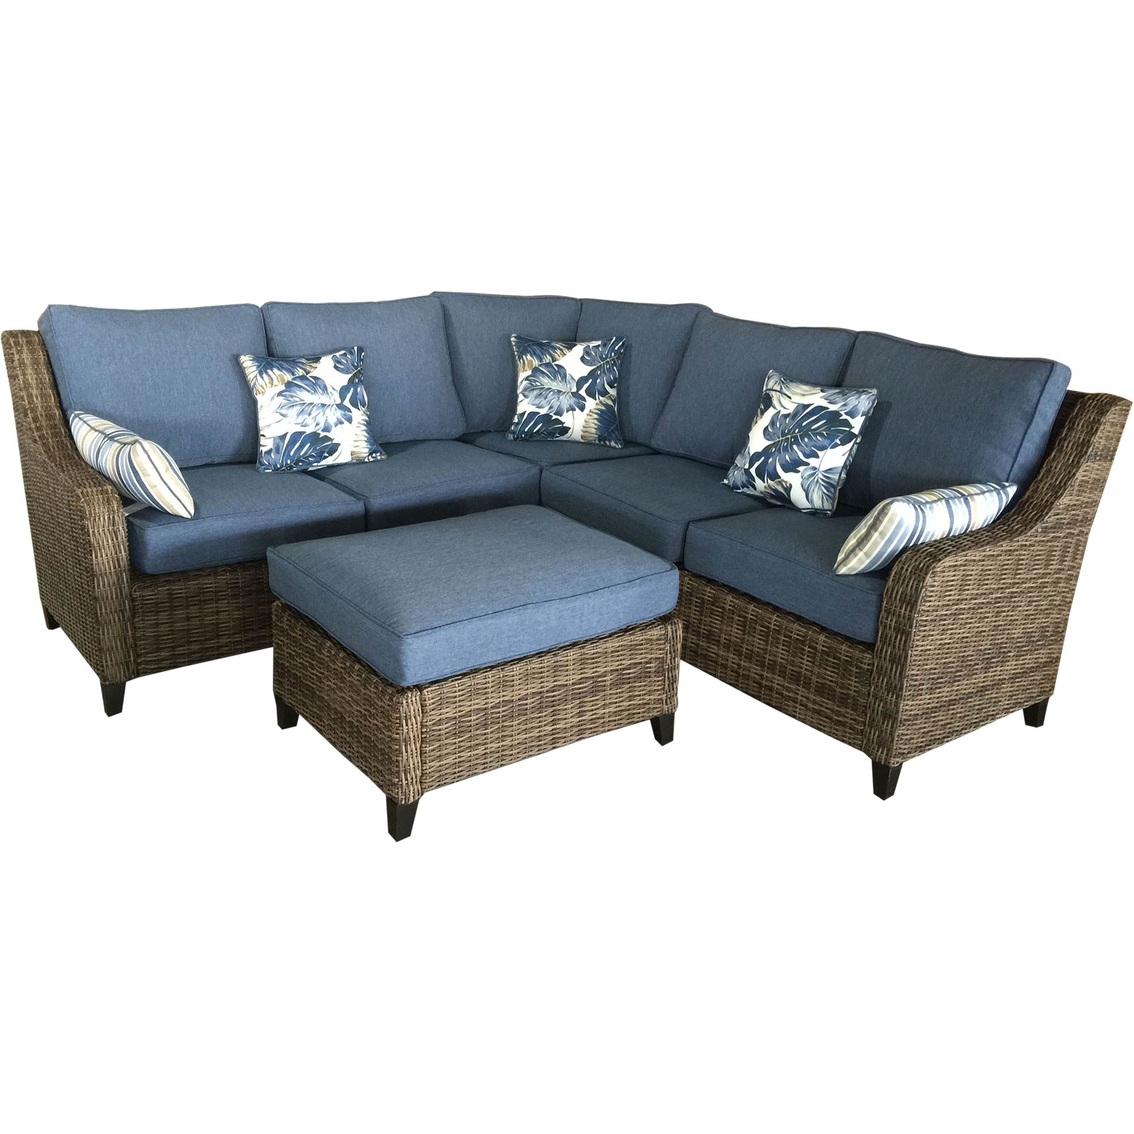 Creative Courtyard Raffia 4 Pc Sectional Sofa Set